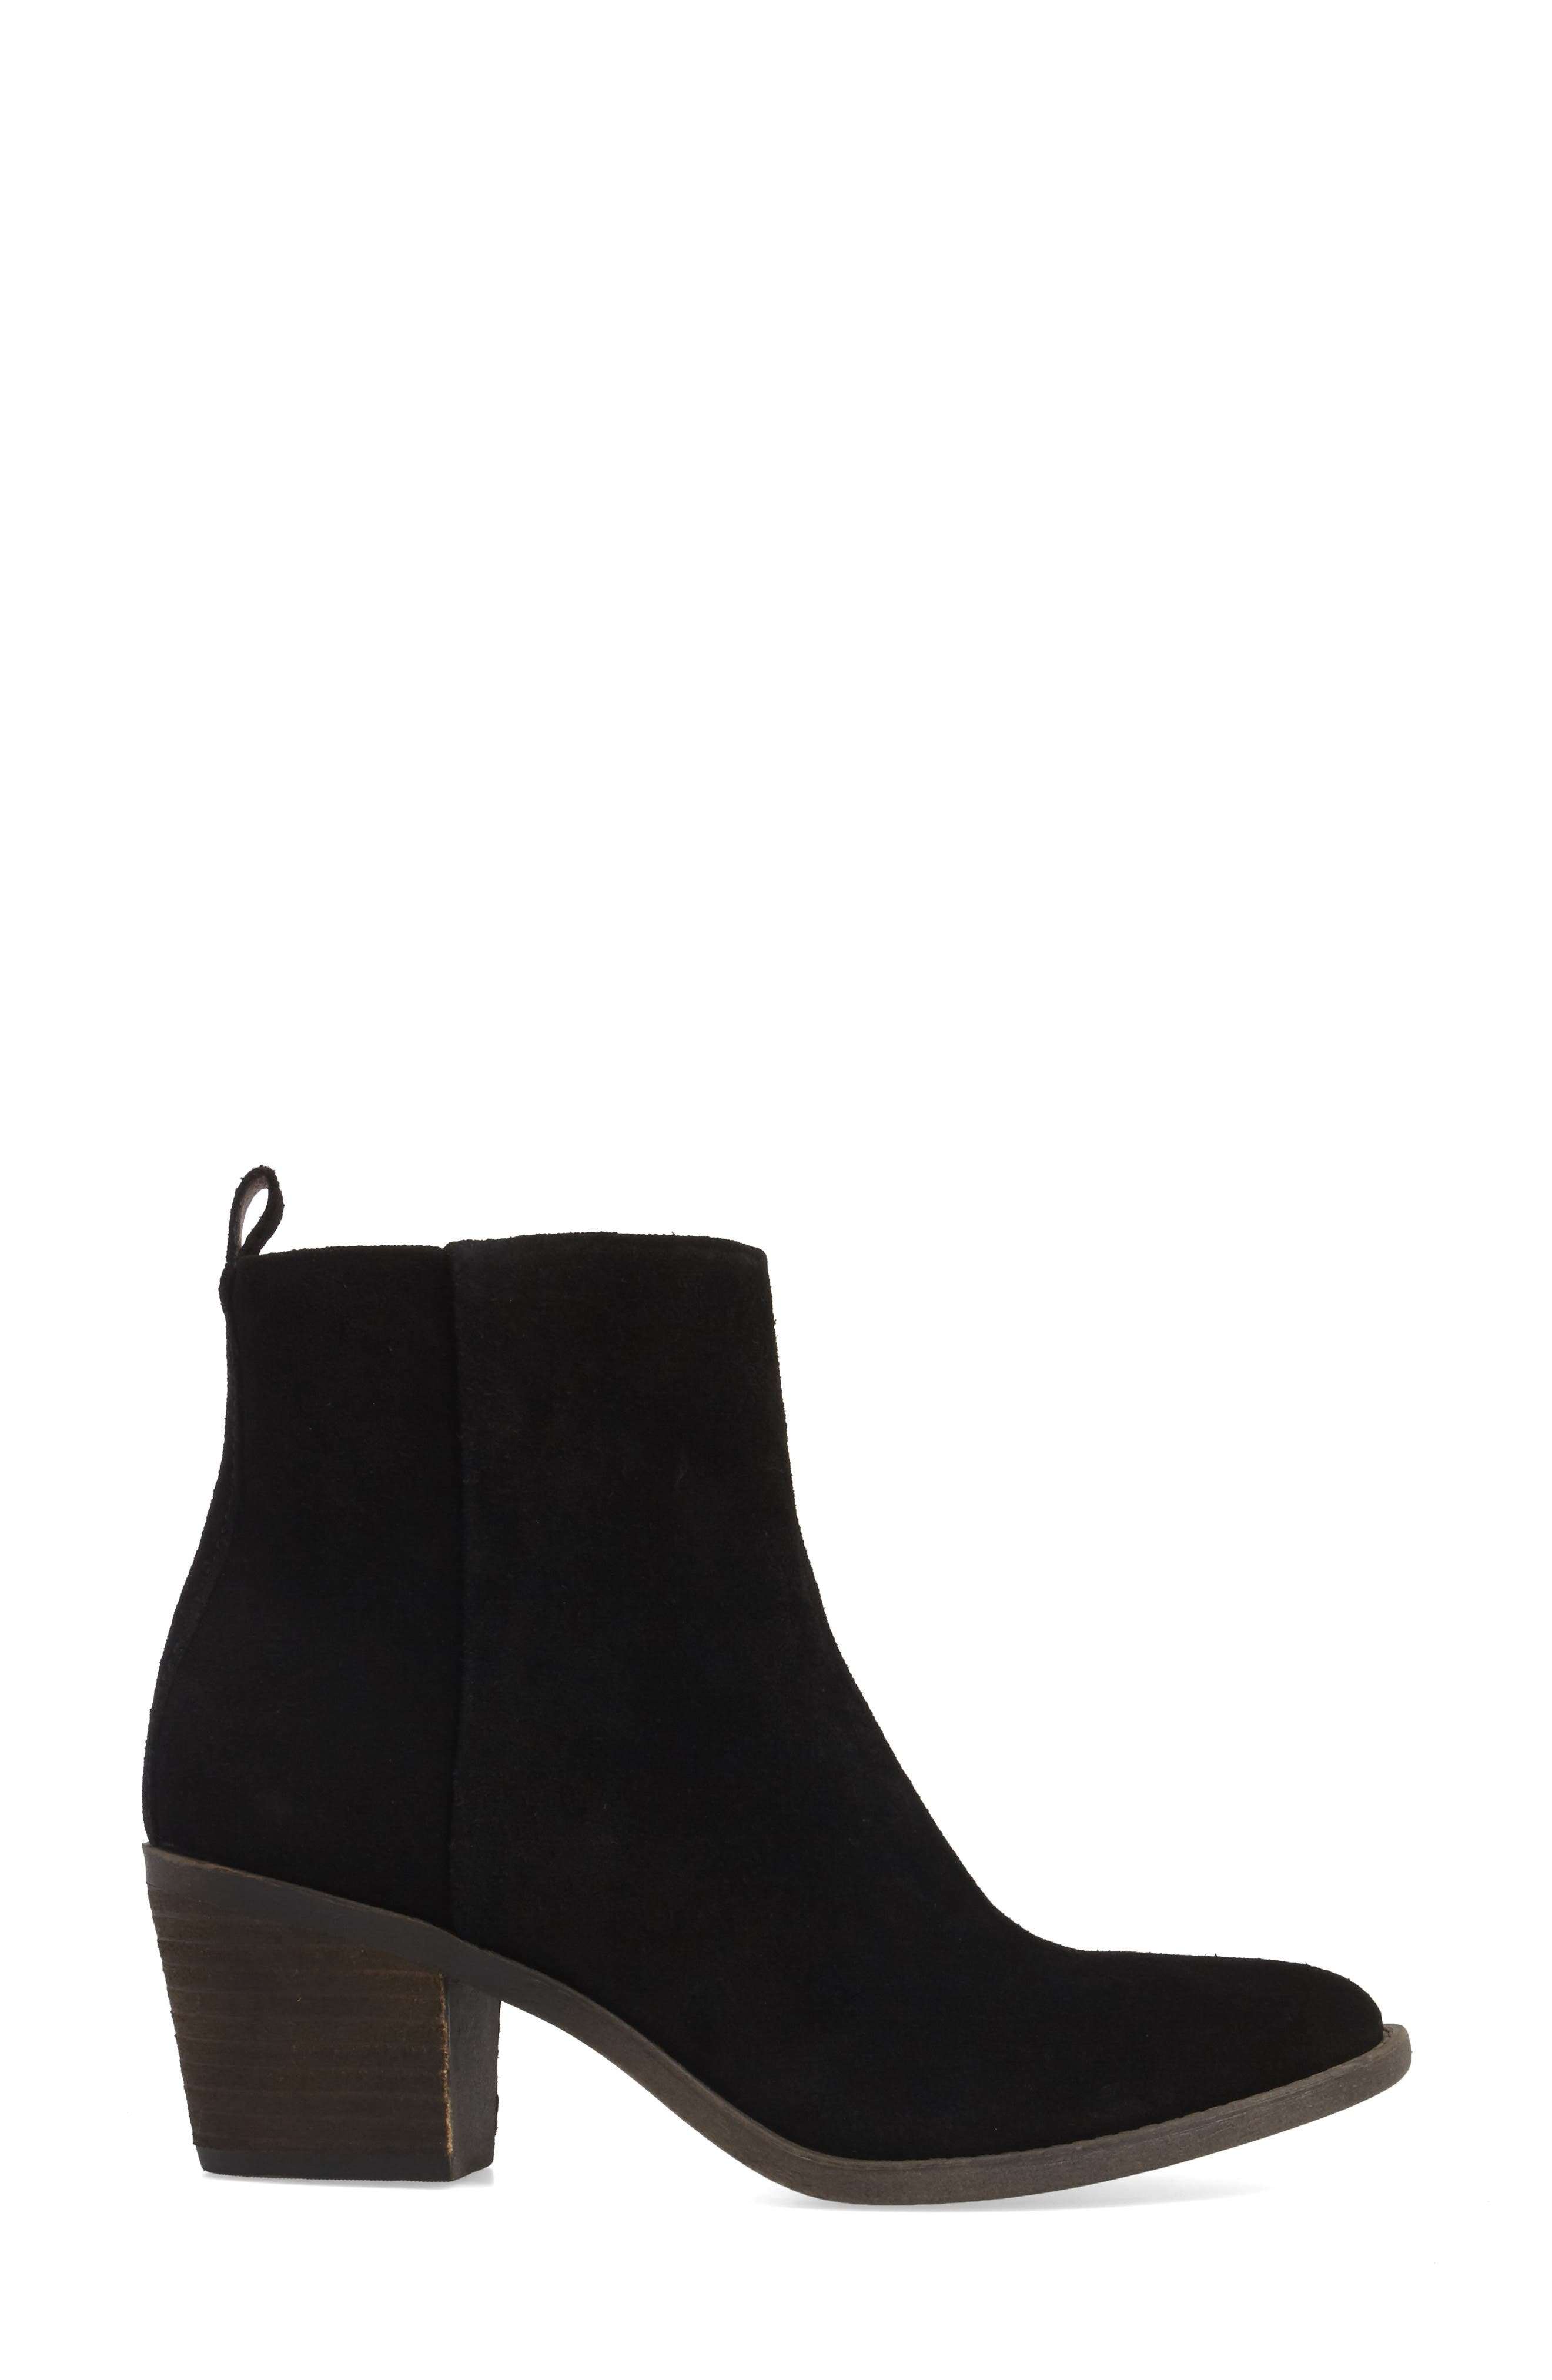 LUCKY BRAND,                             Natania Bootie,                             Alternate thumbnail 3, color,                             001